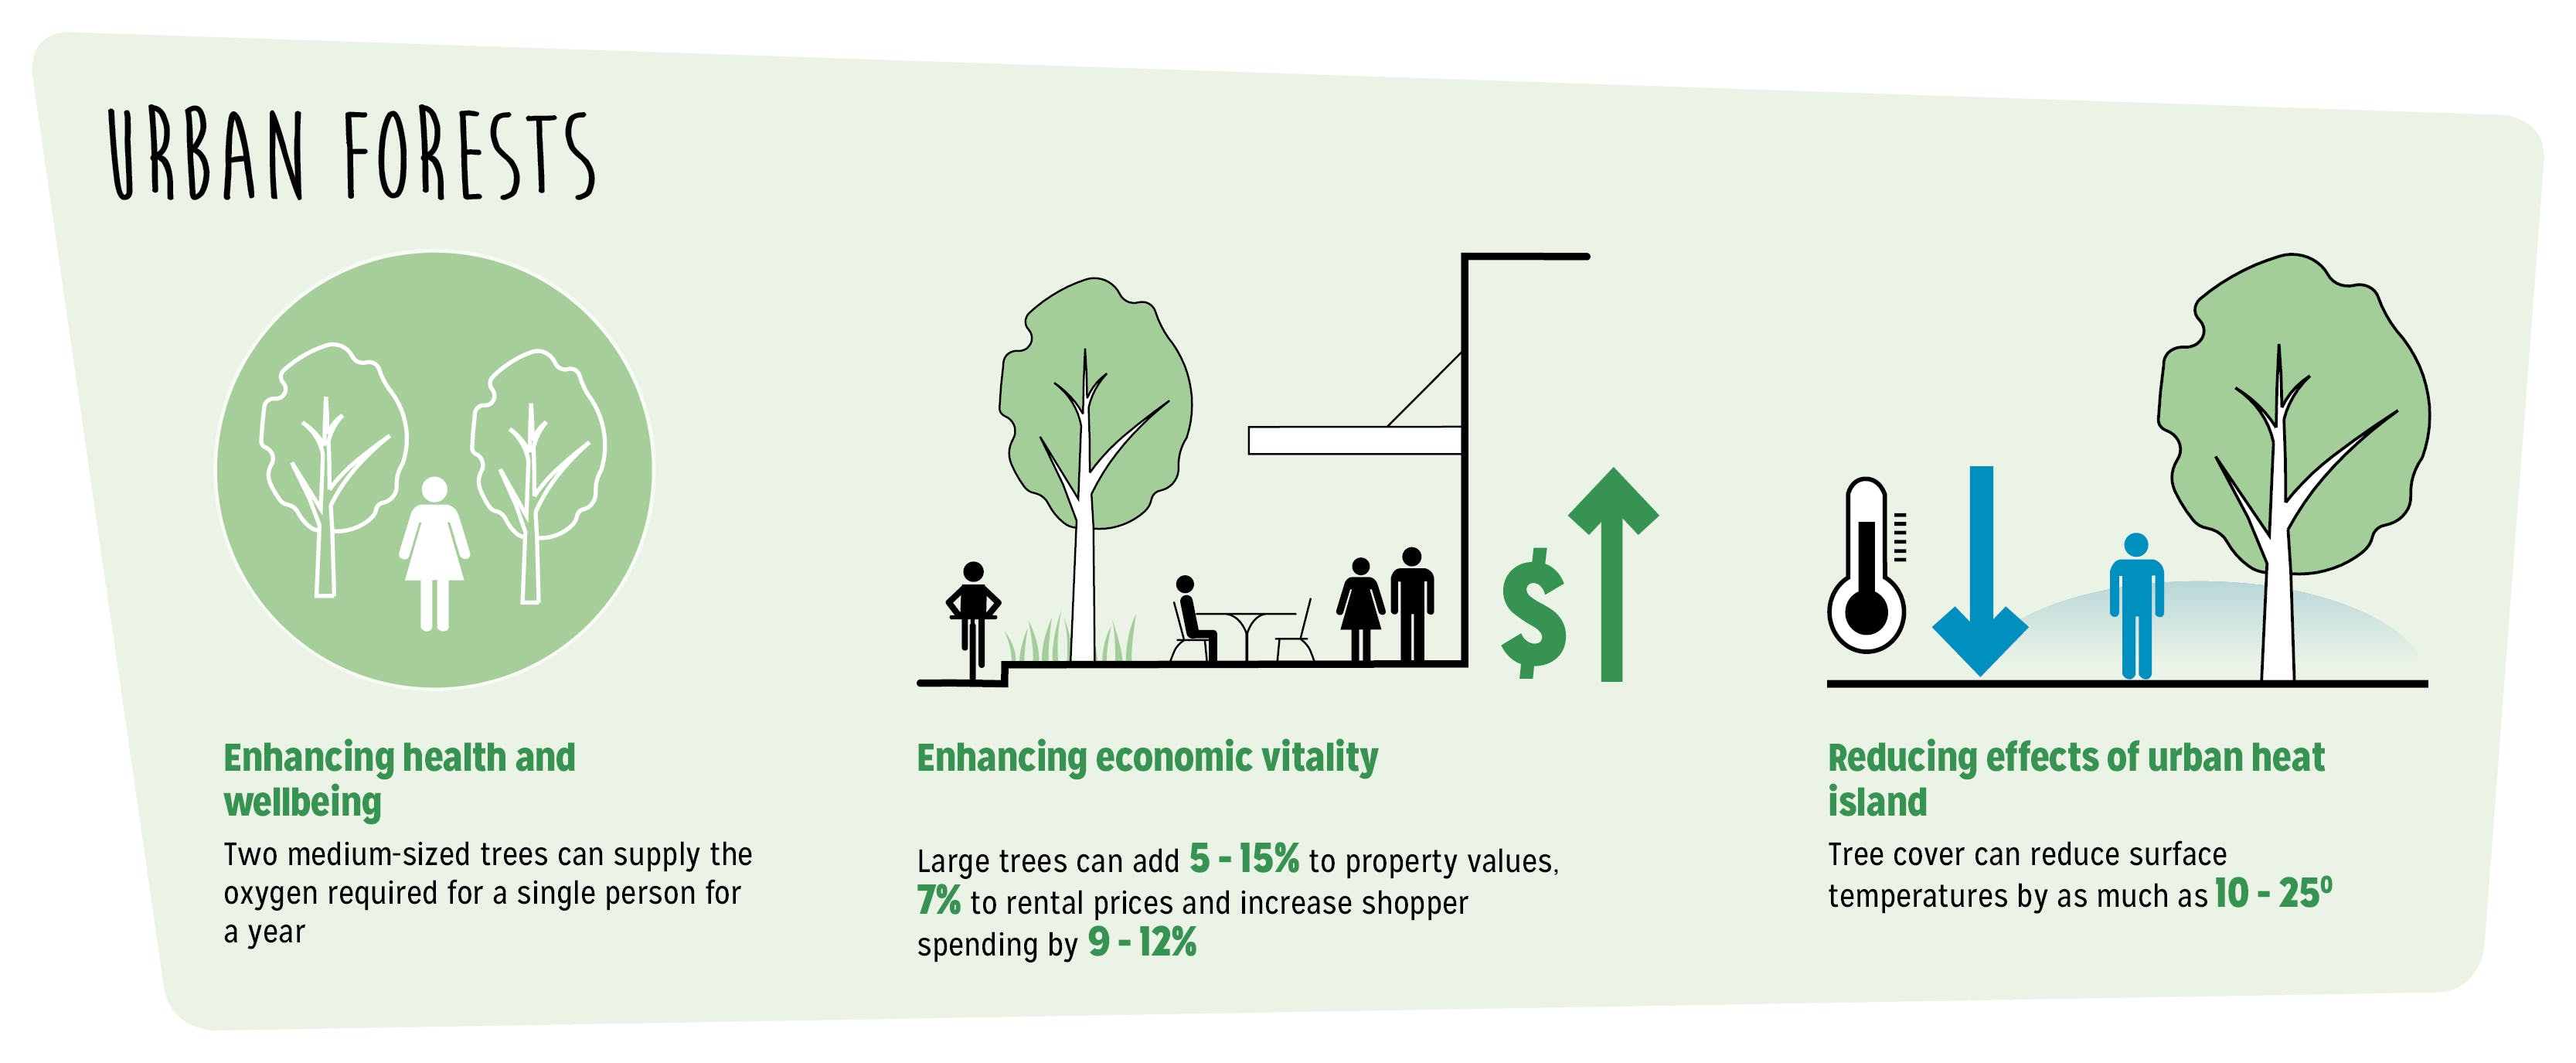 The Benefits of Urban Forests